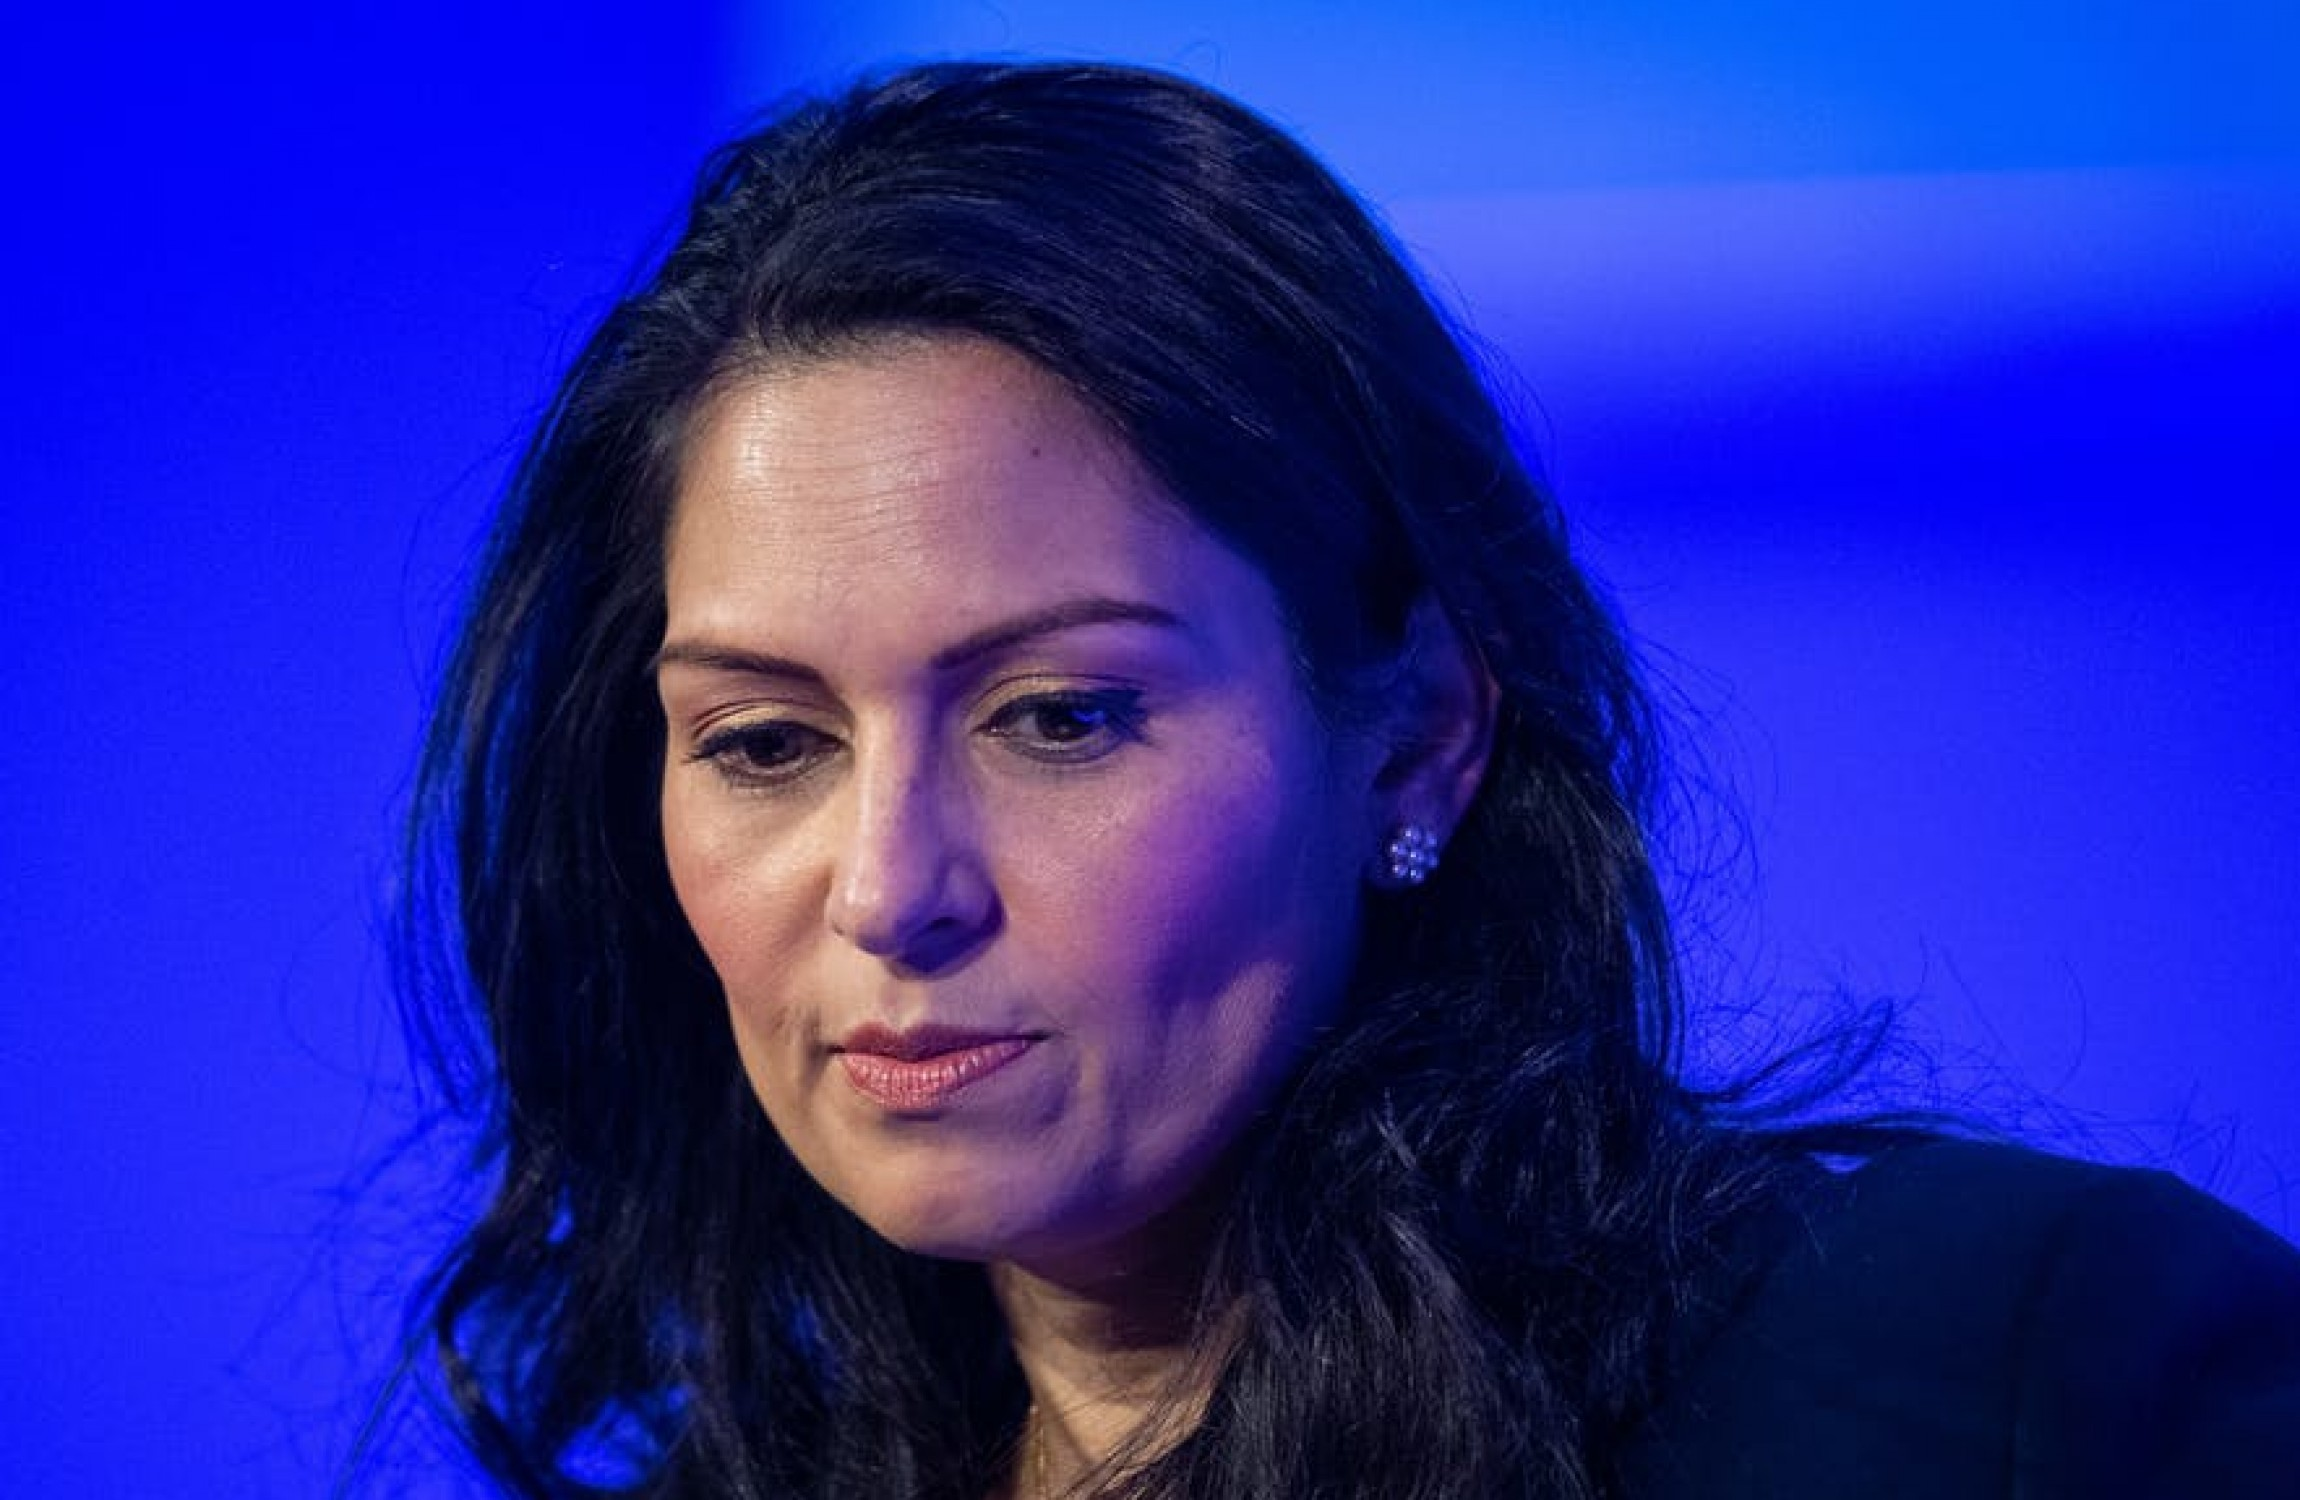 UK PM says he backs interior minister after inquiry into her conduct